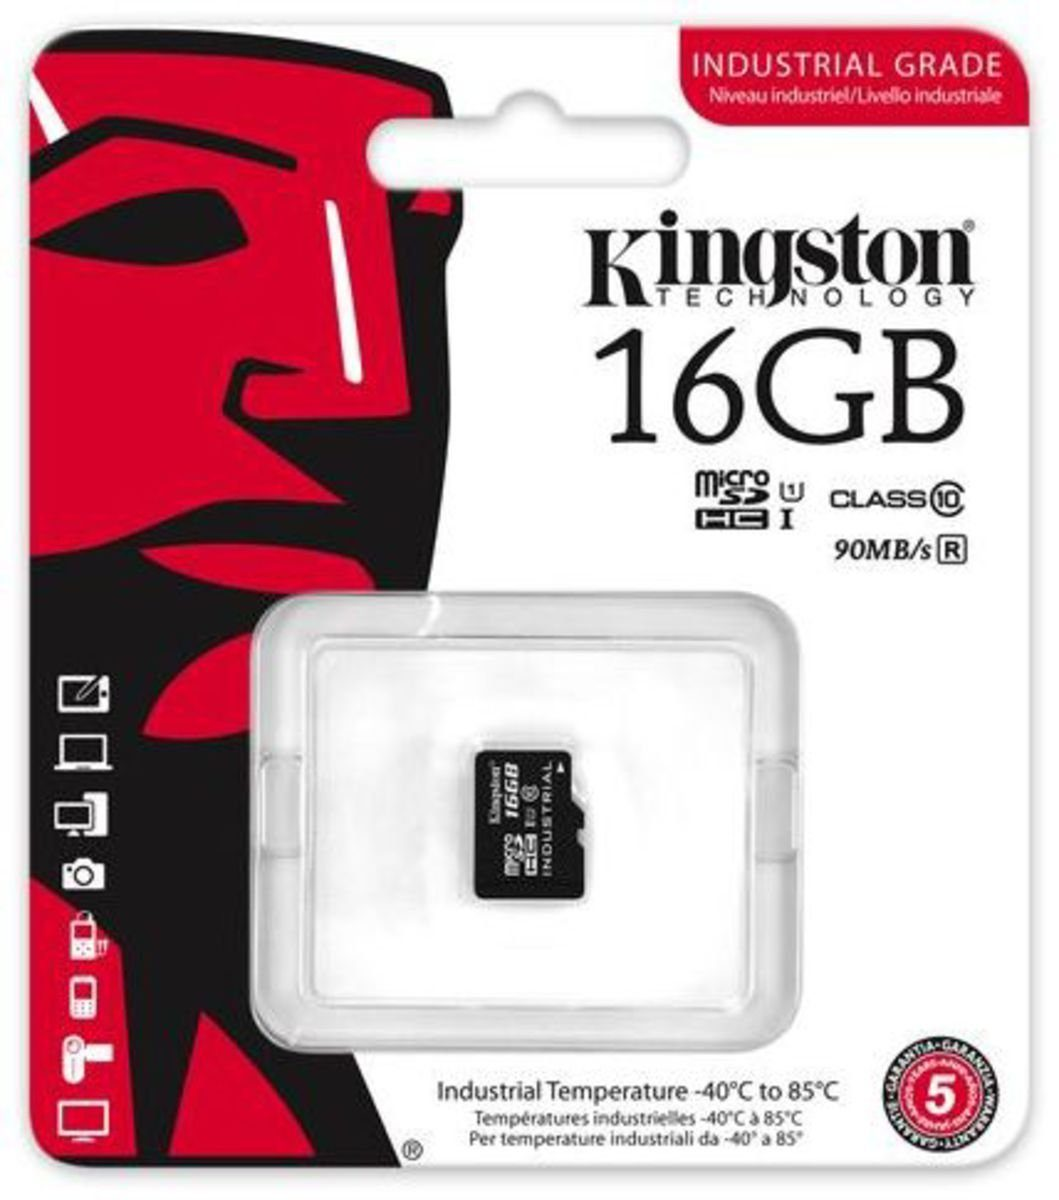 Kingston Speicherkarte »microSDHC Industrial Temp UHS-1 ohne Adapter, 16GB«